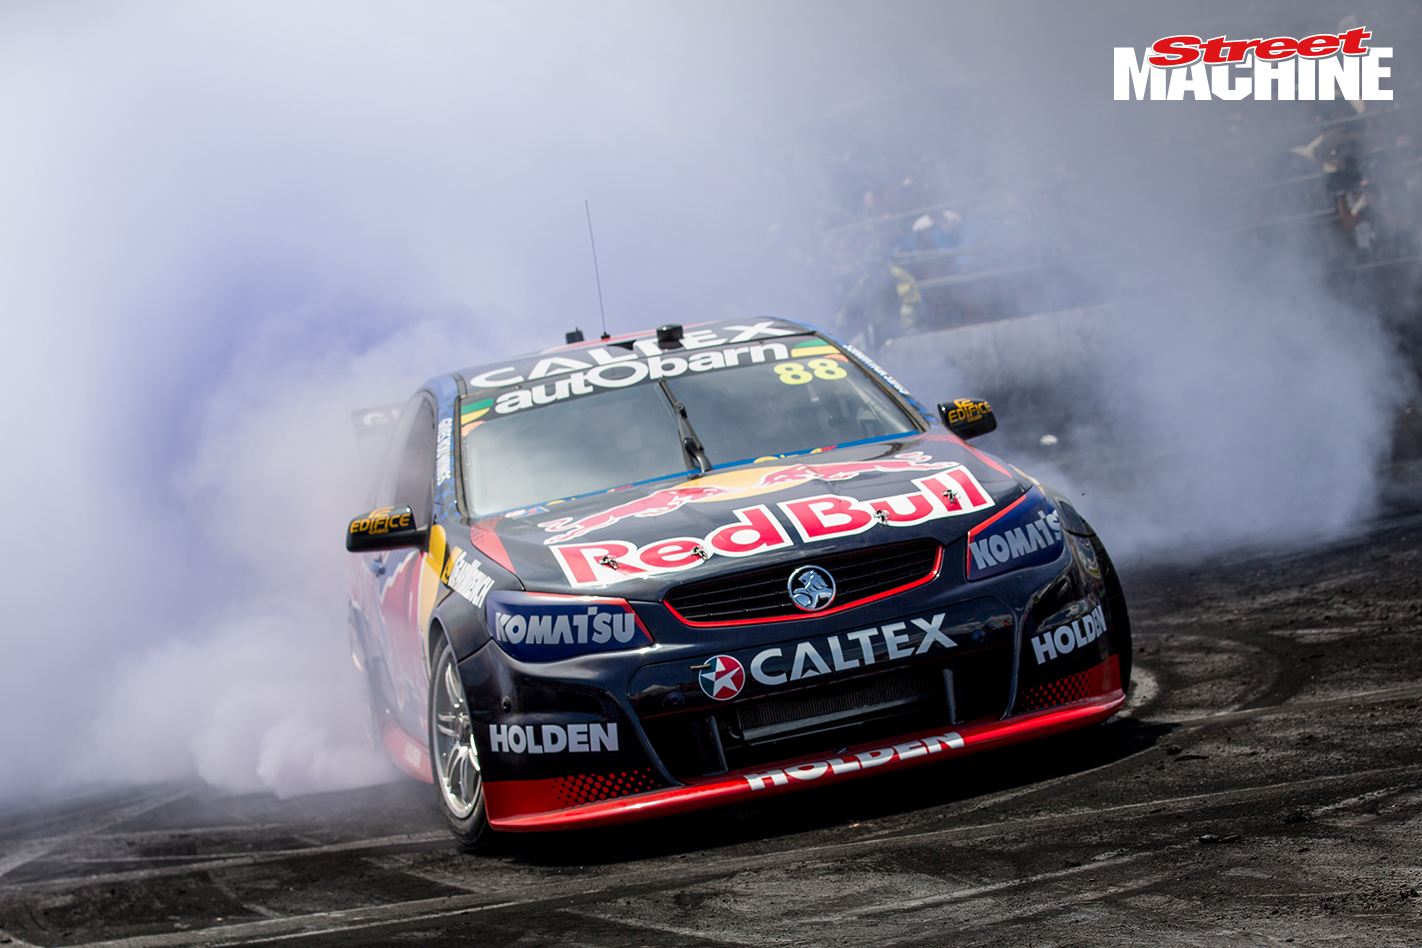 Redbull V8 Supercar Burnout 3 Nw